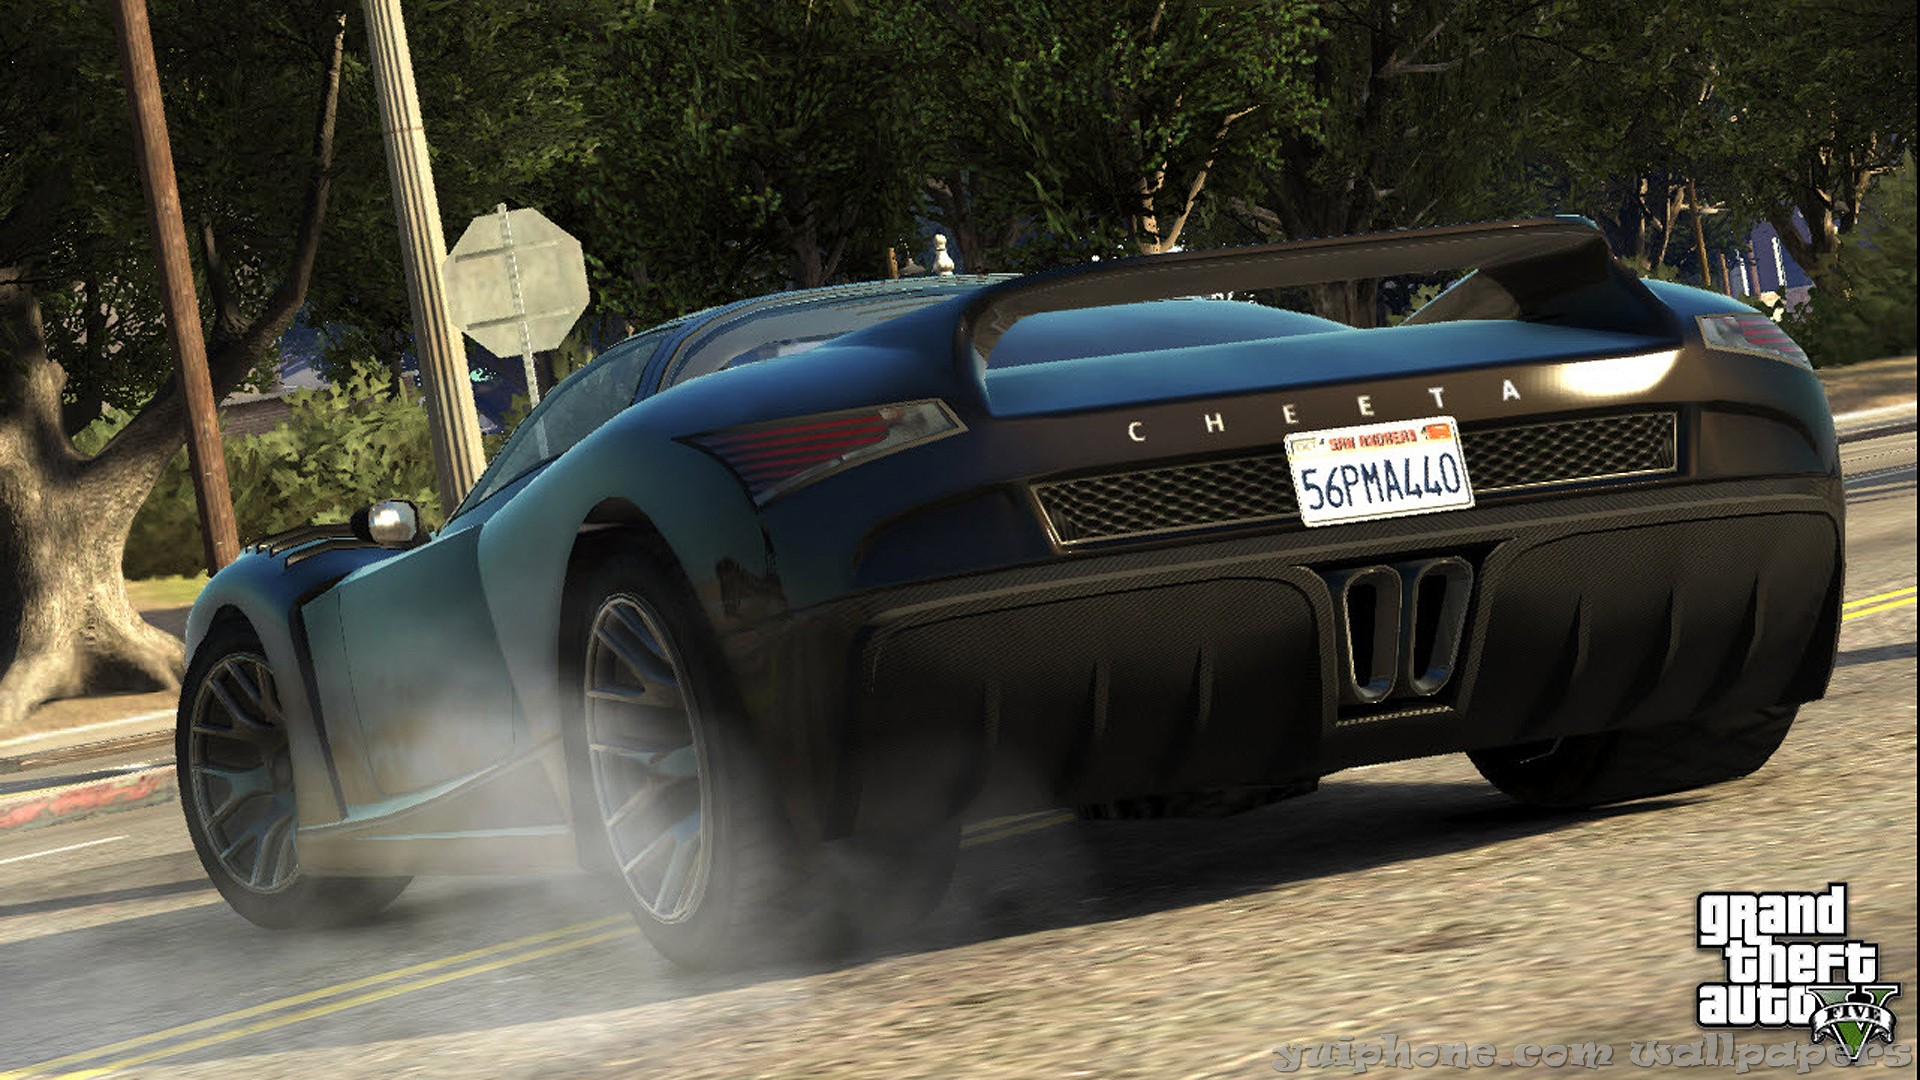 Gta 5 Wallpaper Hd Free Download Of Android Version - Gta 5 Cars Hd , HD Wallpaper & Backgrounds